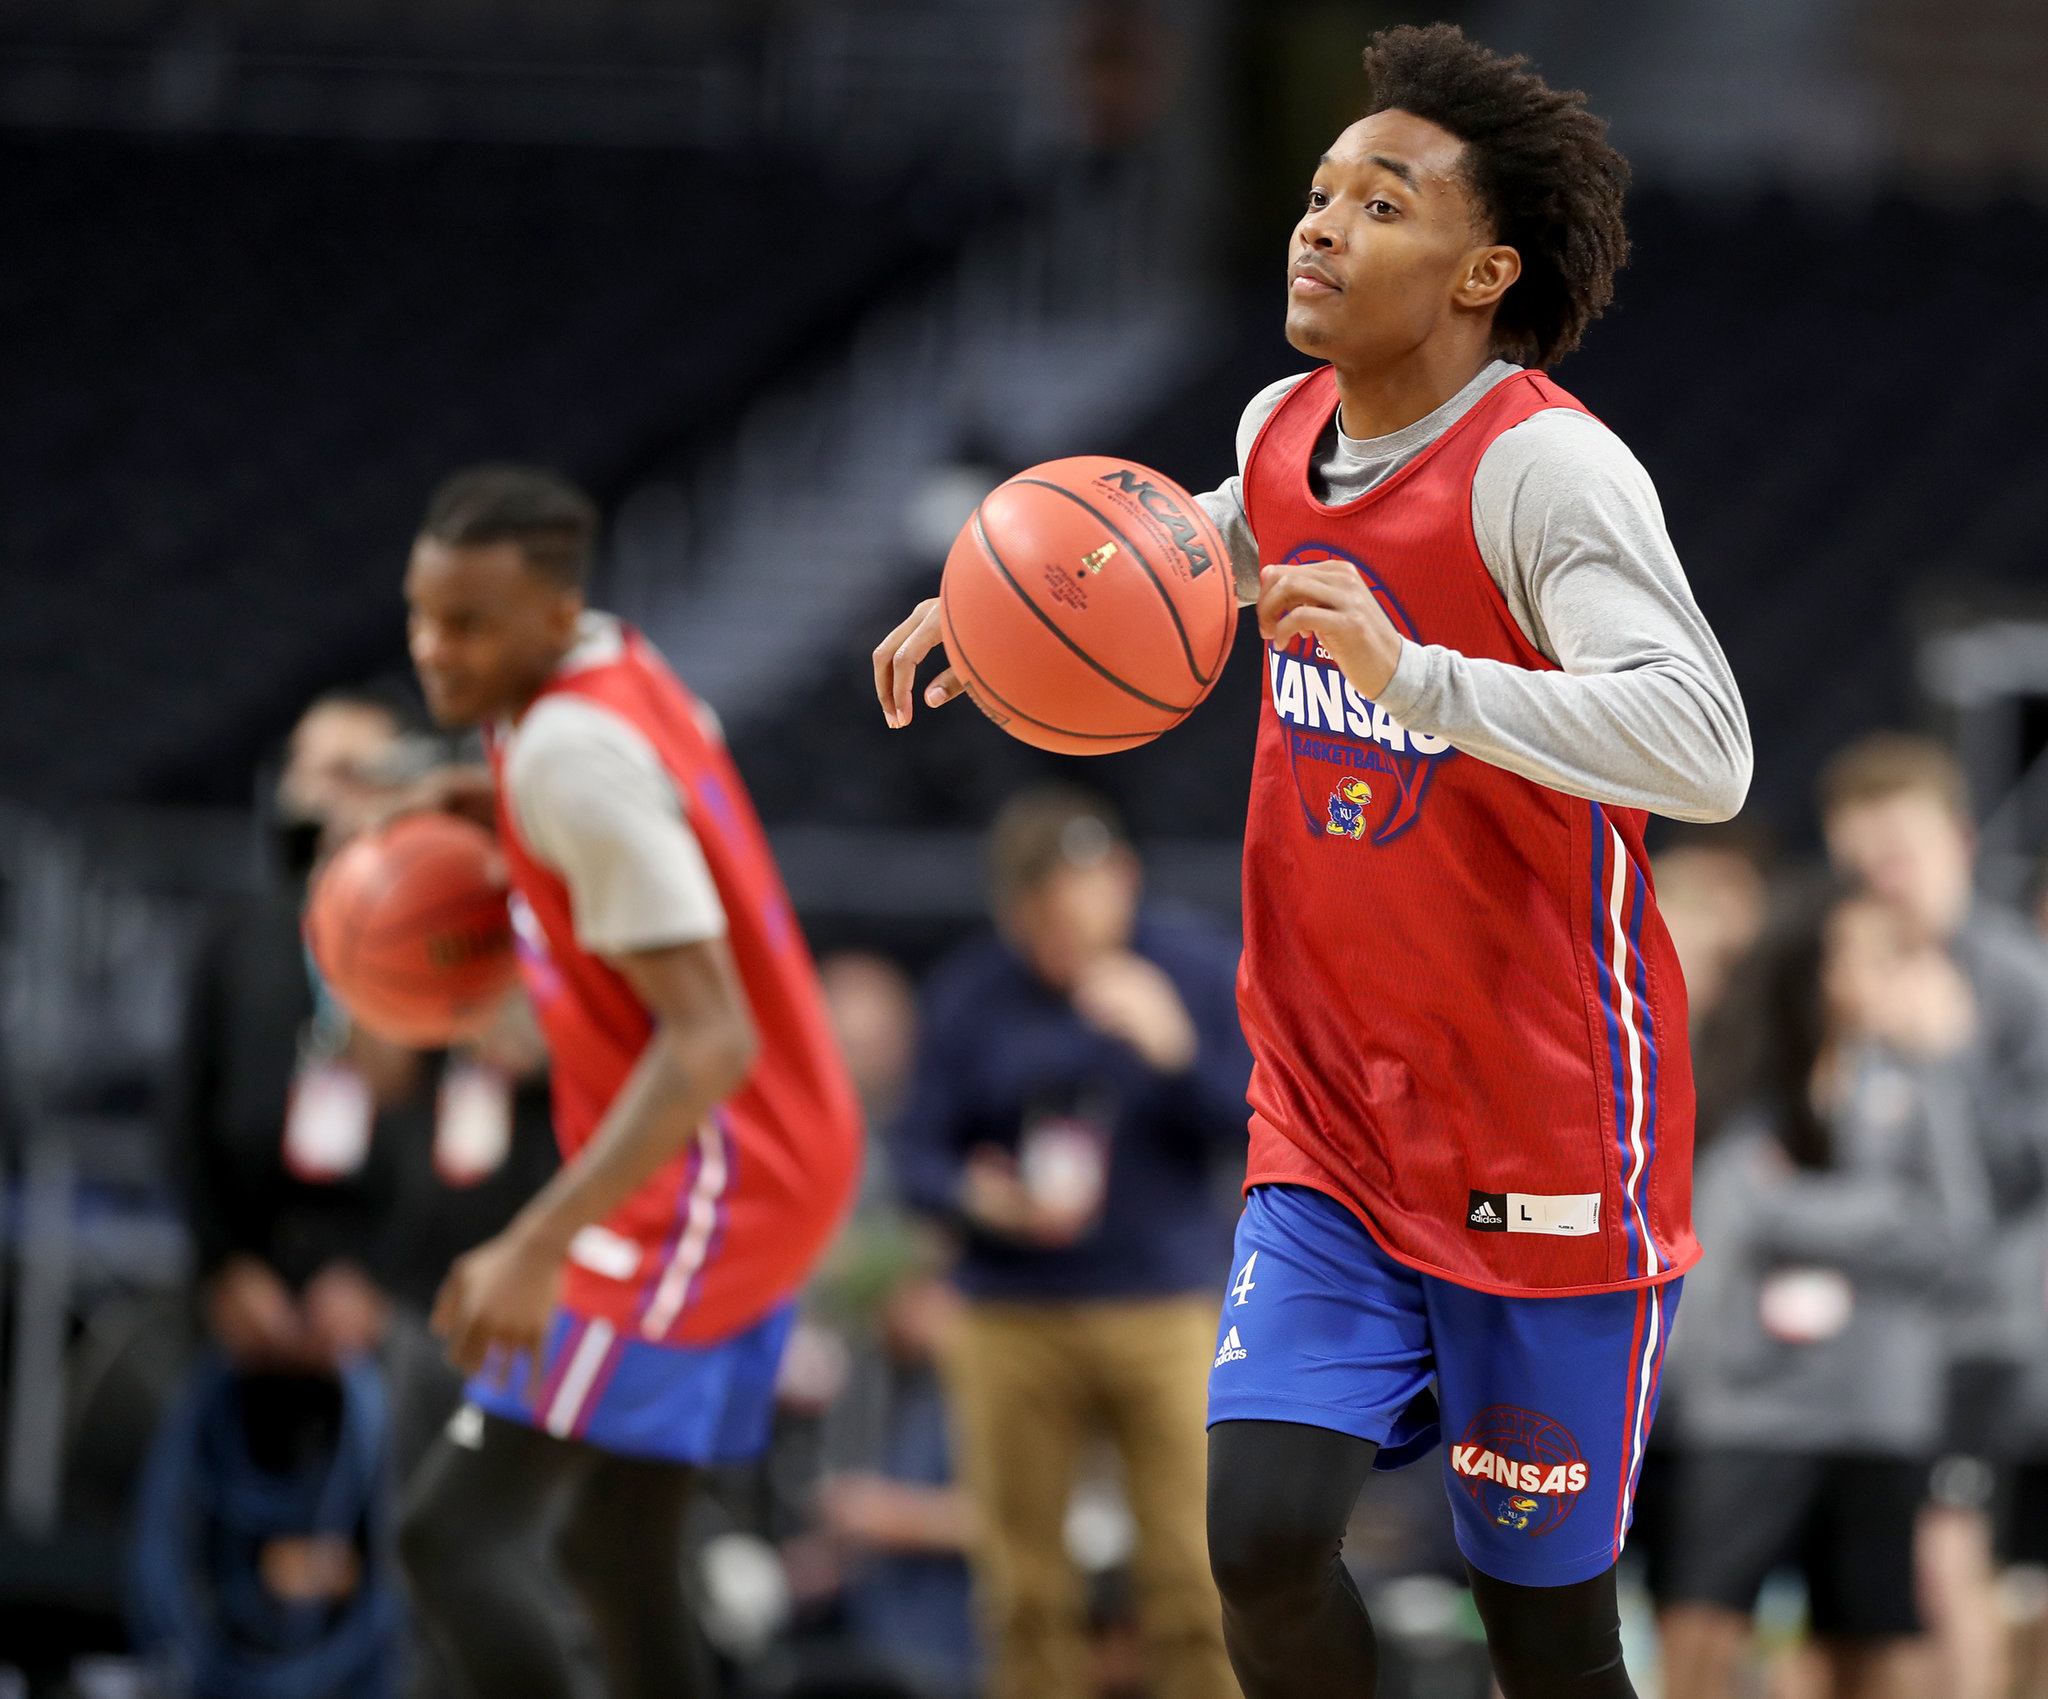 DevonteÕ Graham, right, of Kansas dribbles up court during practice sessions for the Final Four of the NCAA Tournament at San Antonio on March 30, 2018.